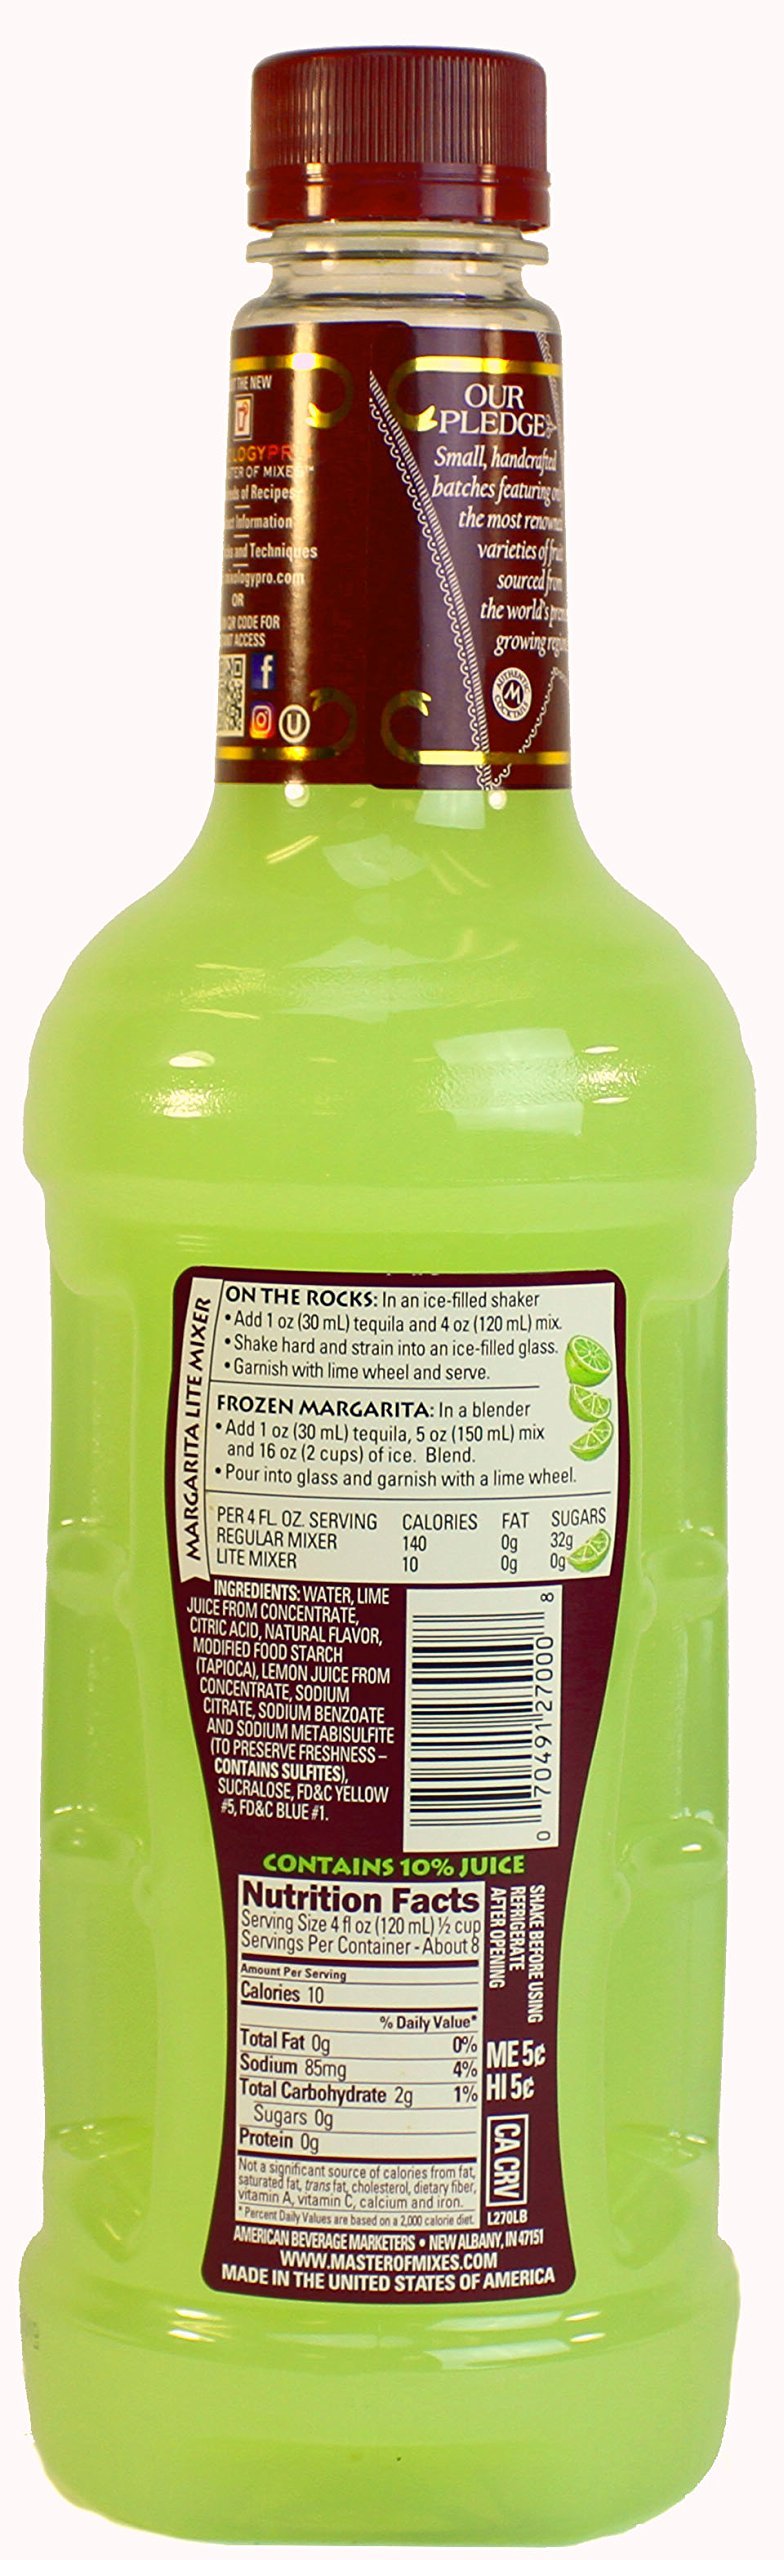 Master of Mixes Margarita Lite Drink Mix, Ready To Use, 1 Liter Bottle (33.8 Fl Oz), Pack of 3 by Master of Mixes (Image #3)